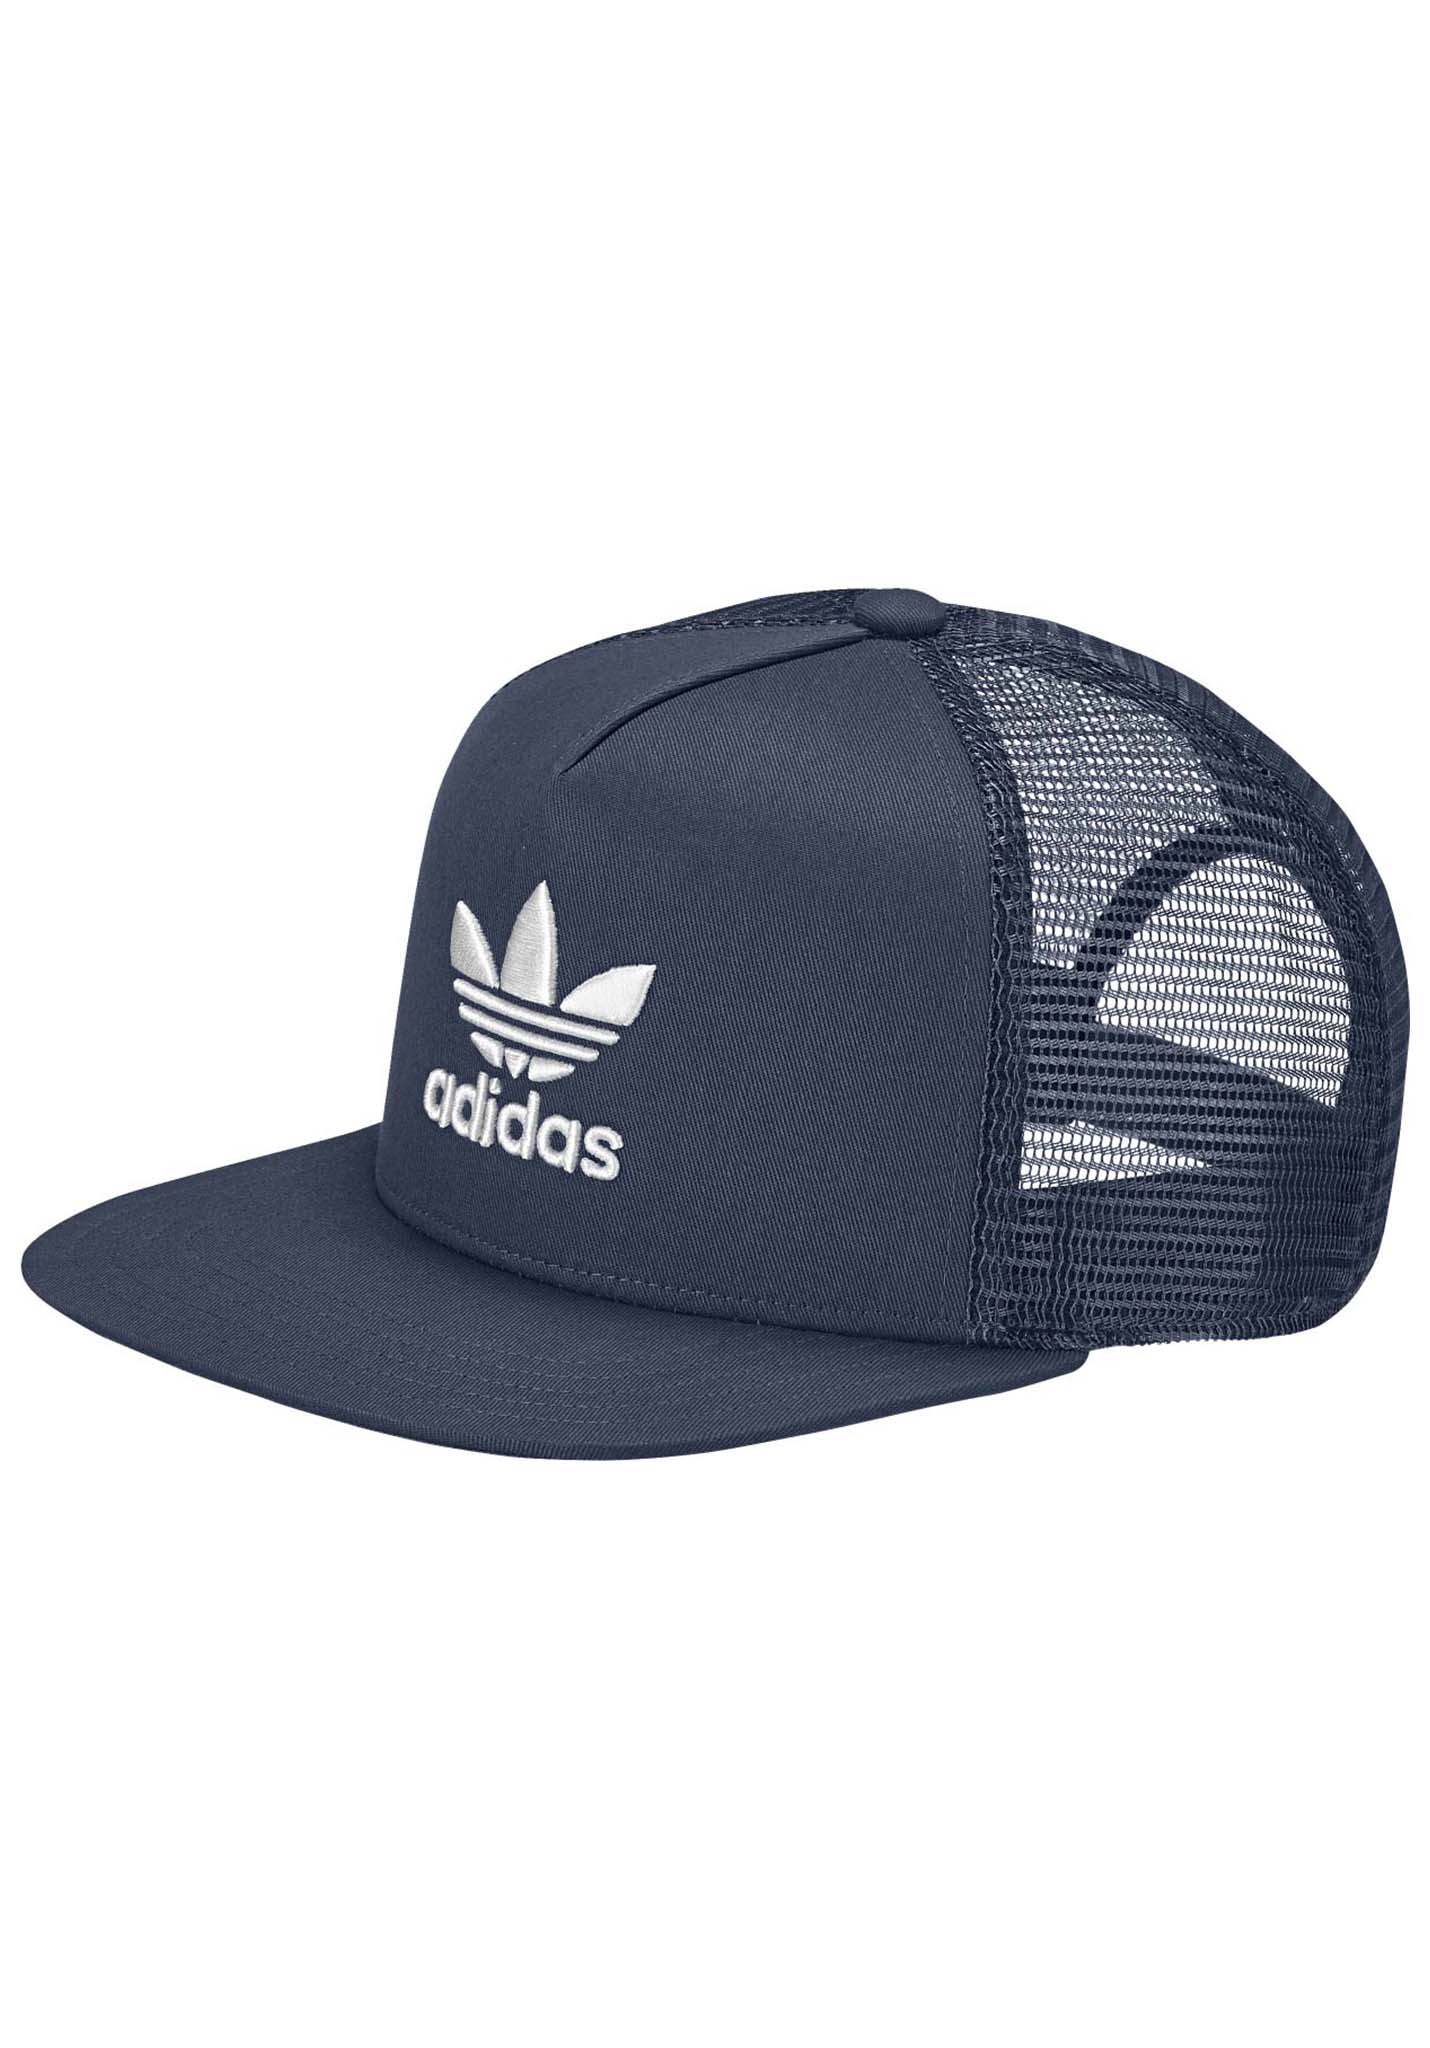 ADIDAS ORIGINALS Trefoil - Trucker Cap - Blue - Planet Sports feb09d69787